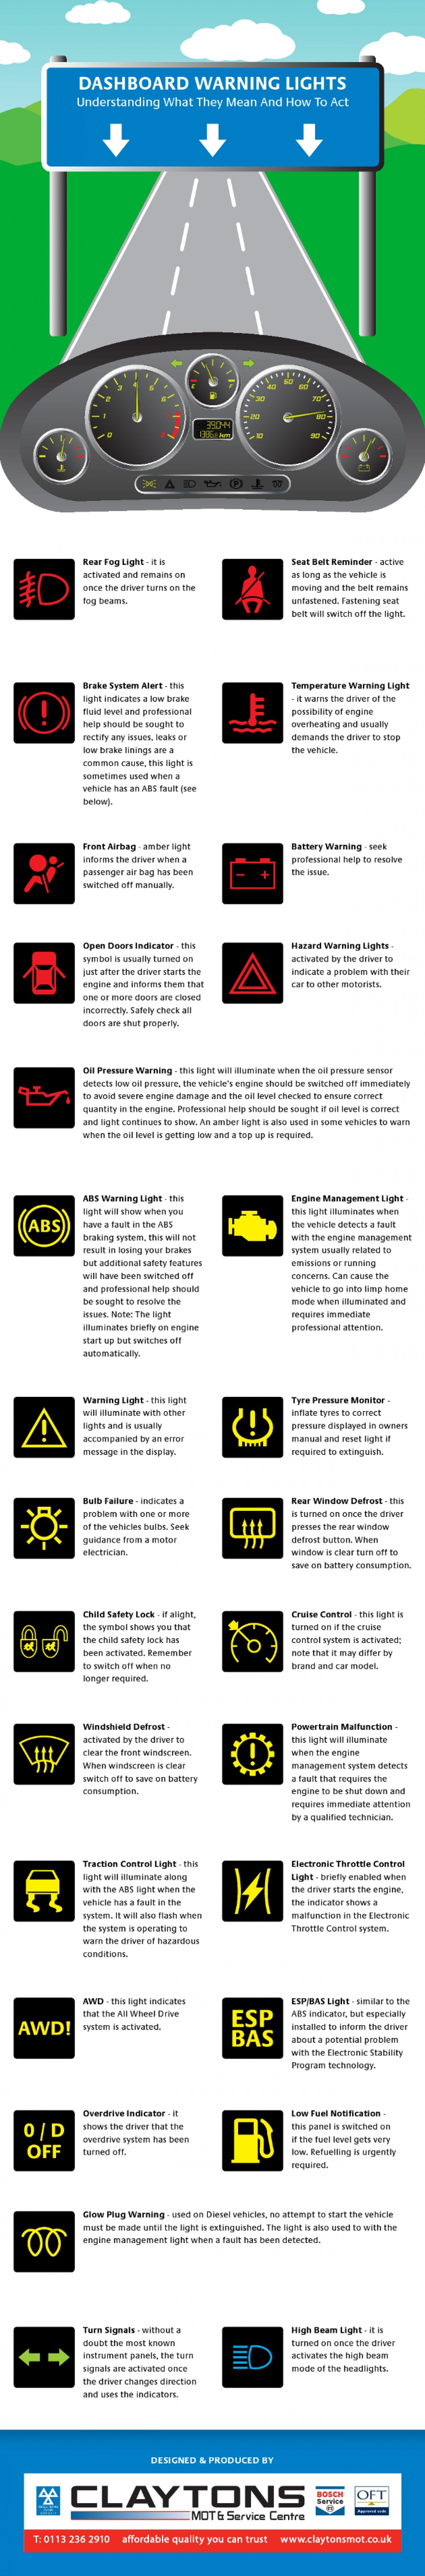 Tips For Driving In The Rain By OUTsurance Keep Safe Protects - Car sign on dashboarddont panic common dashboard warnings you need to know part